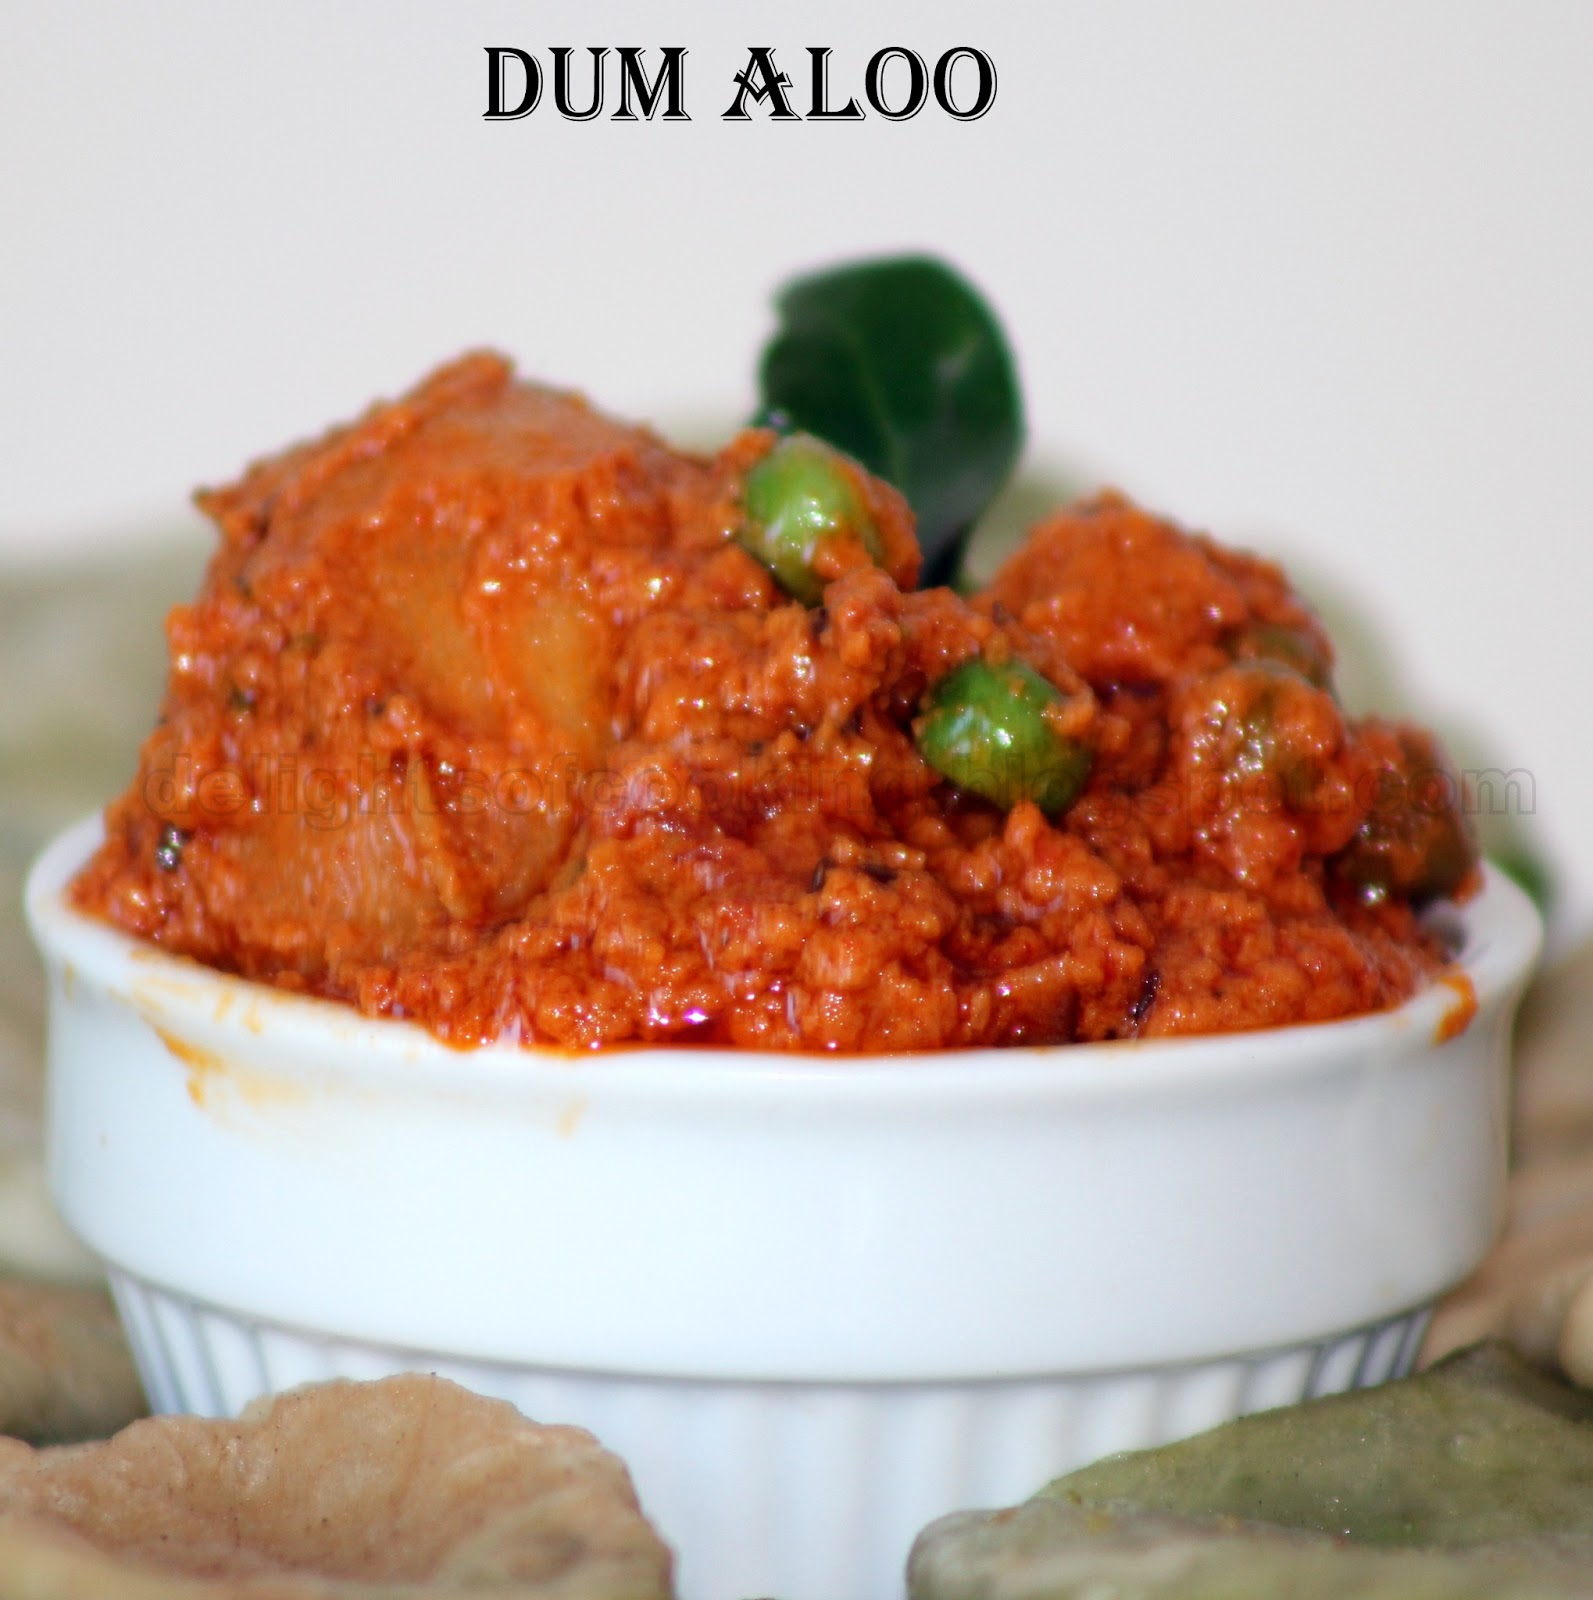 Kitchen Chronicles: Matar Kachori with Dum Aloo